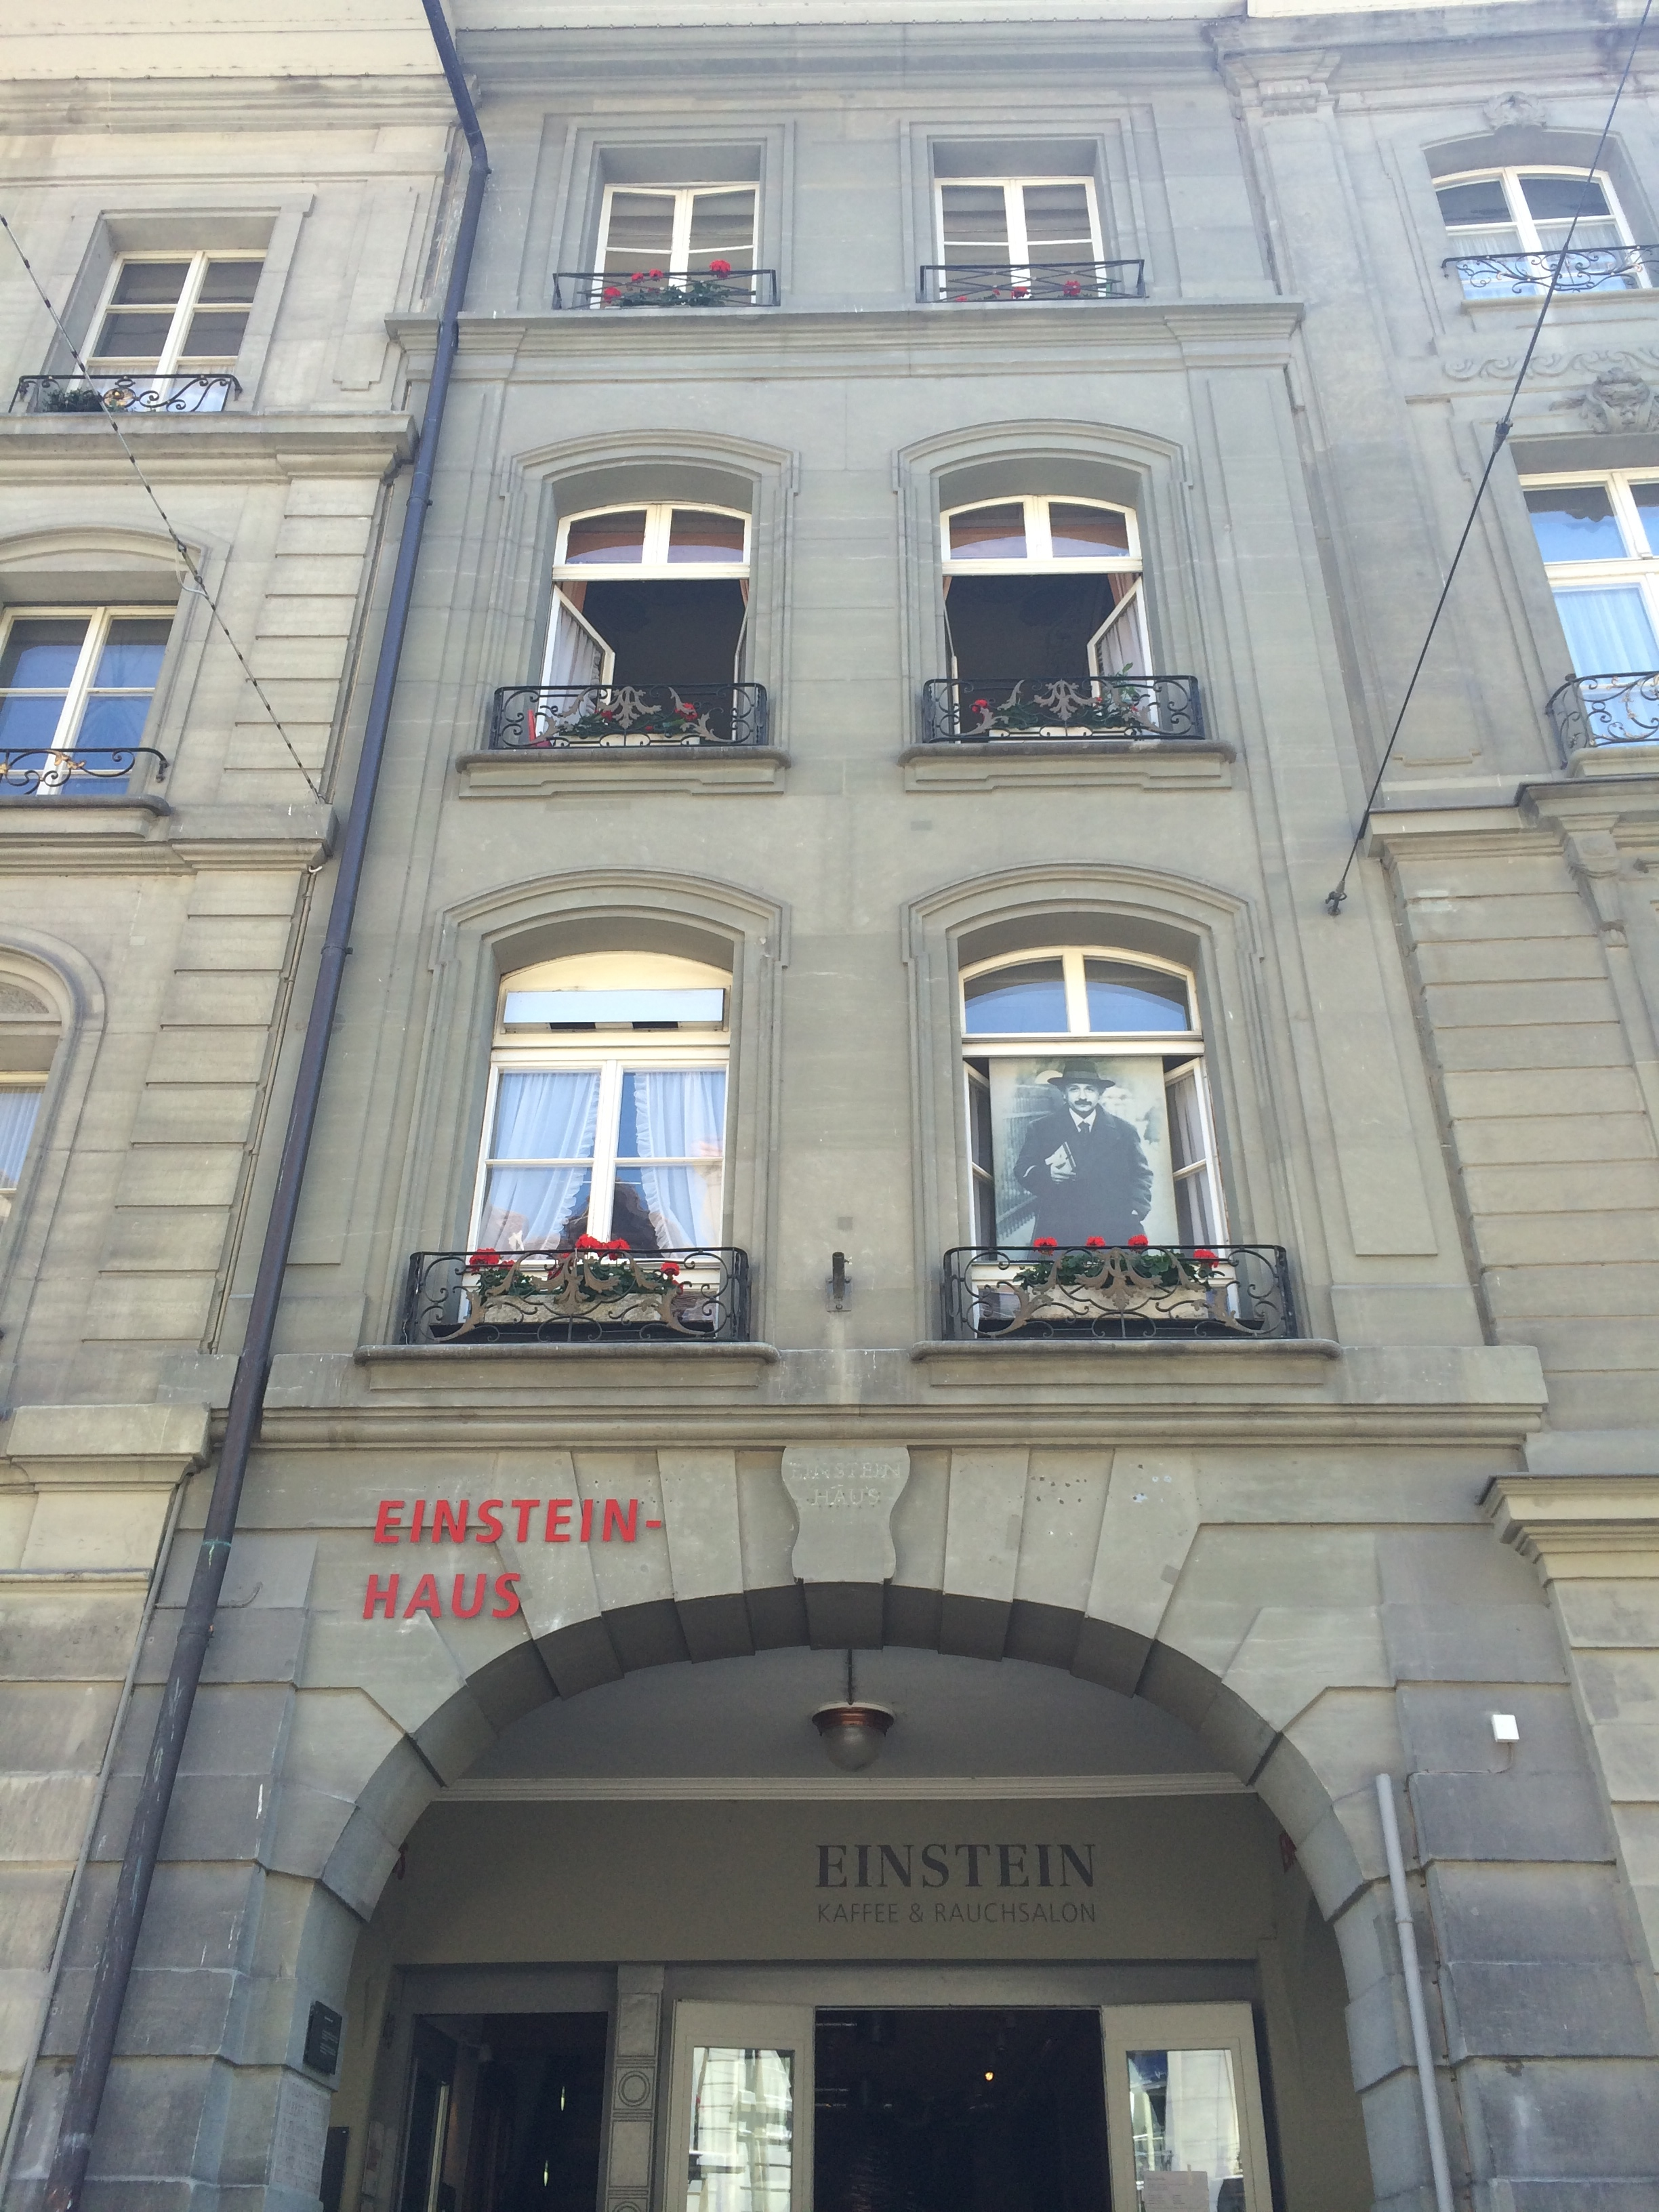 I was fascinated with Einstein growing up, to see his apartment in person was beyond exciting for me.